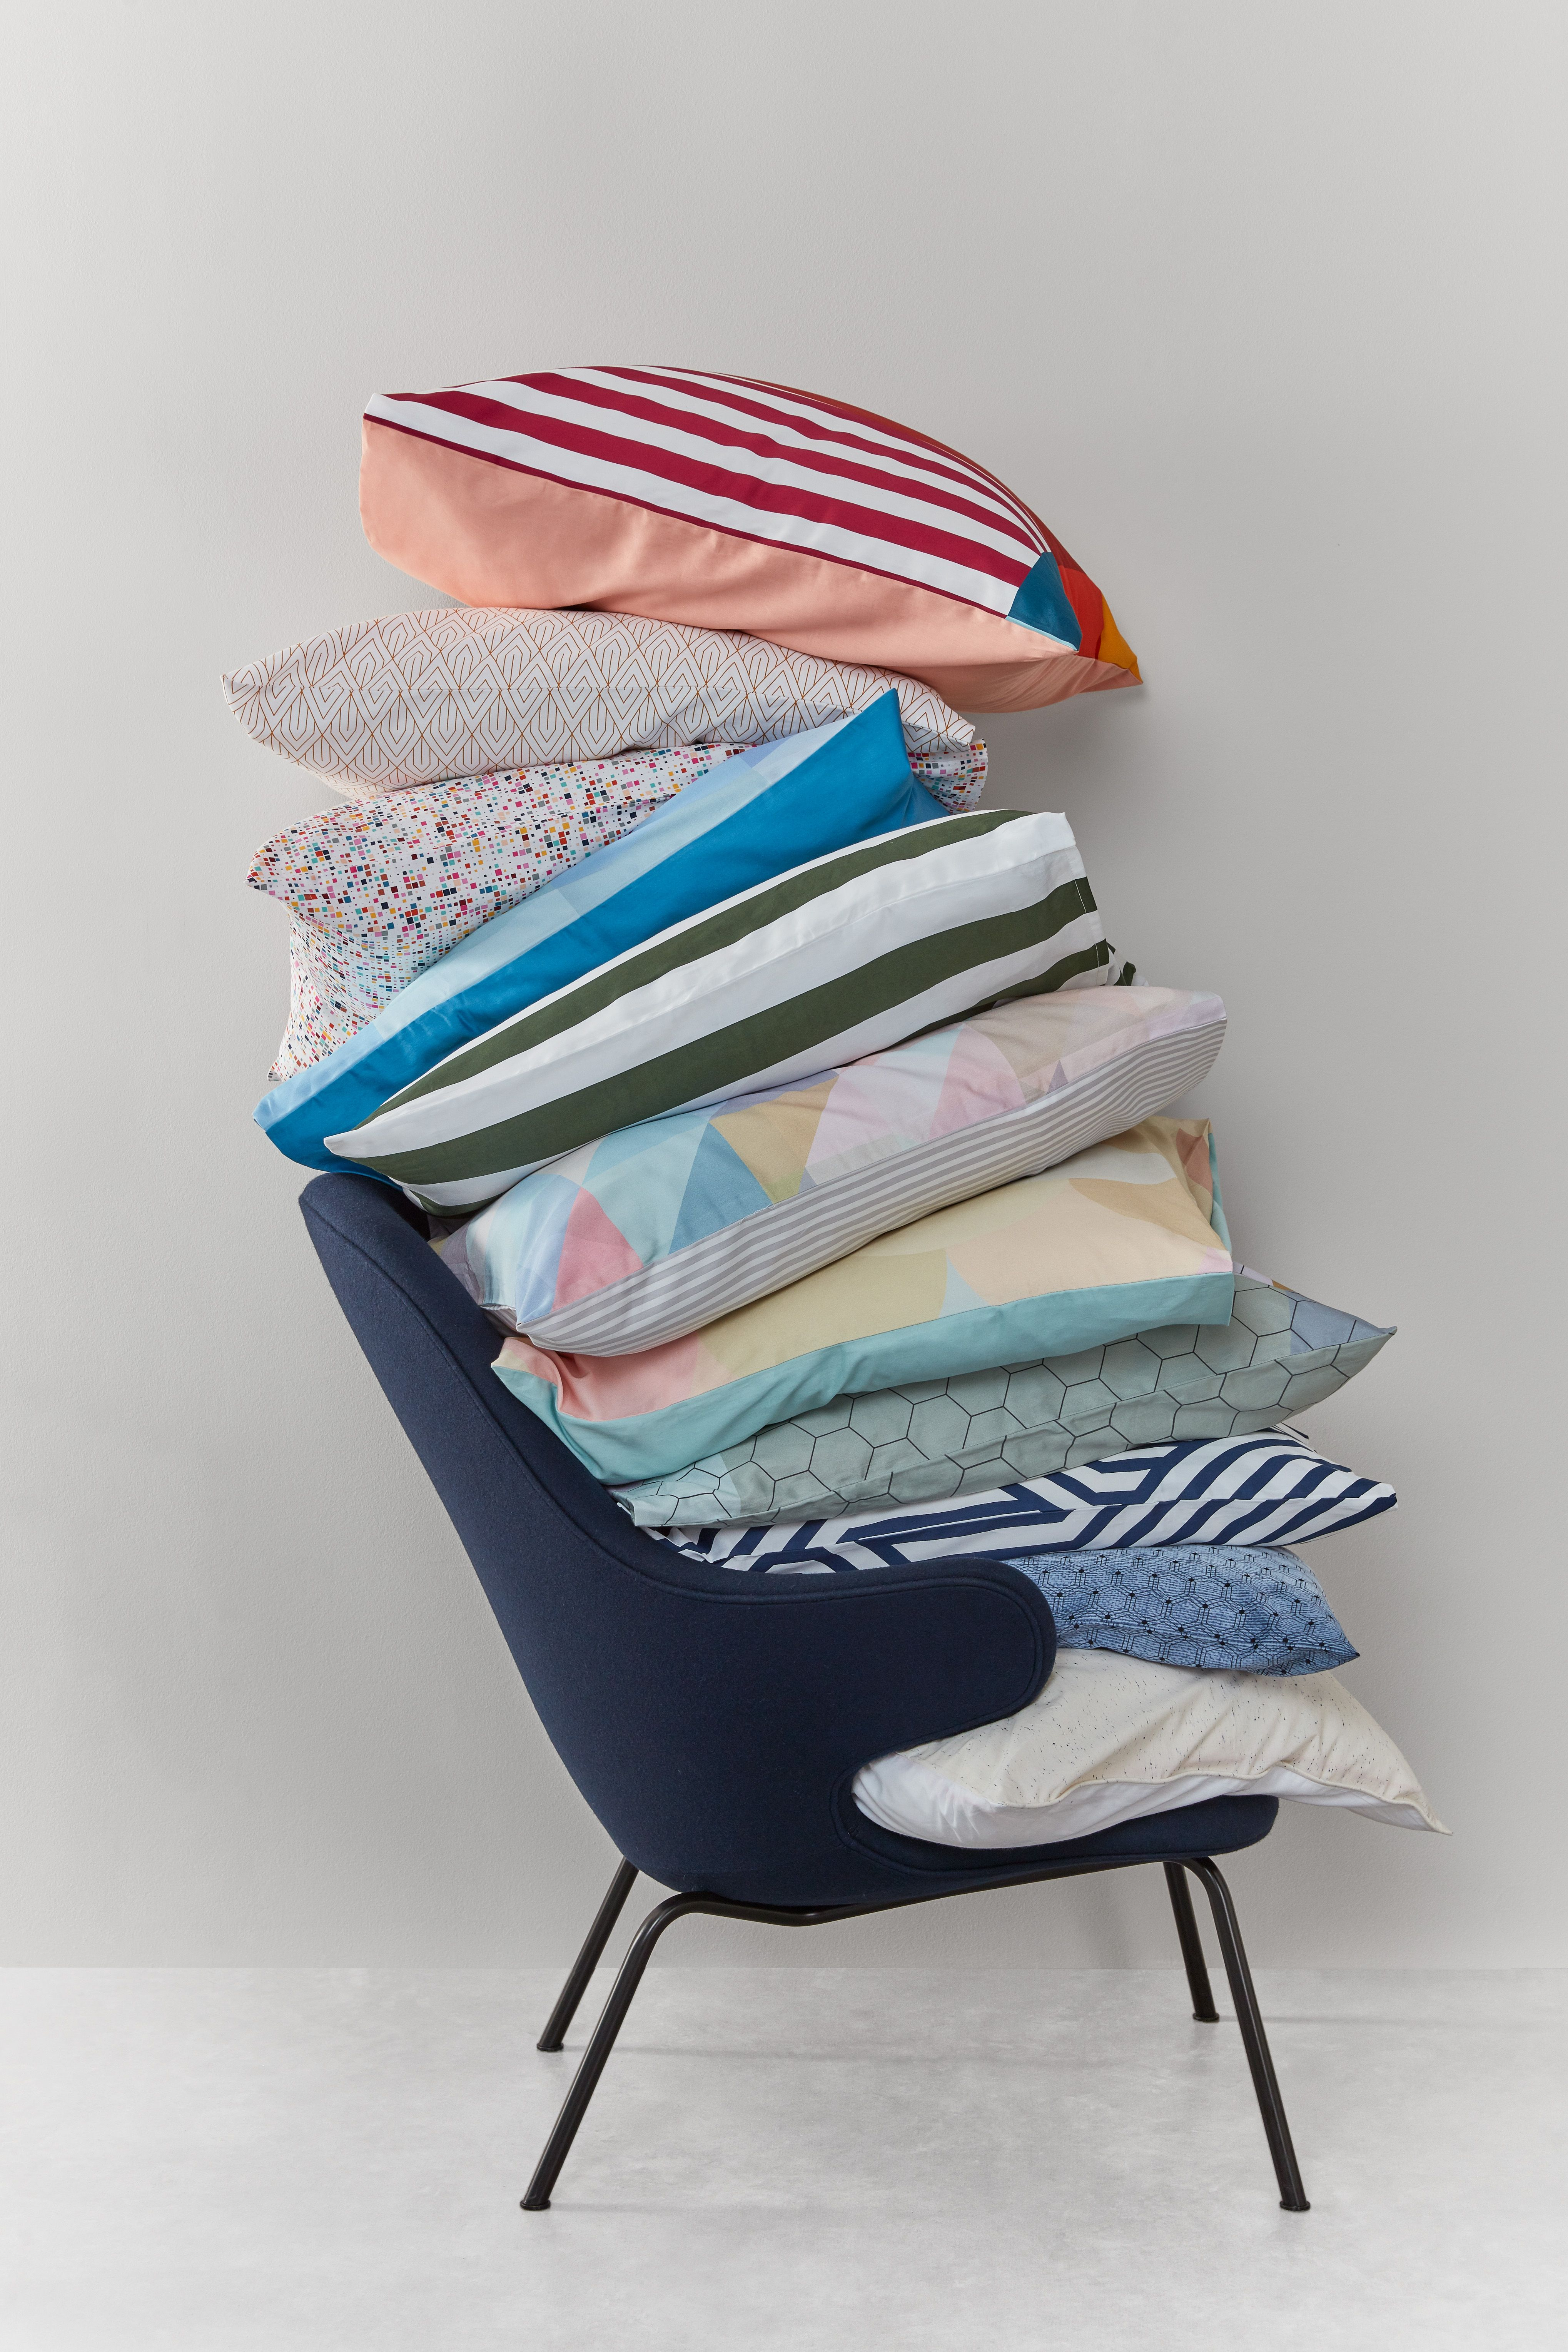 In The Mood Collection Kussens Cushions From The Spring Collection 2018 By Auping Slaapkamer